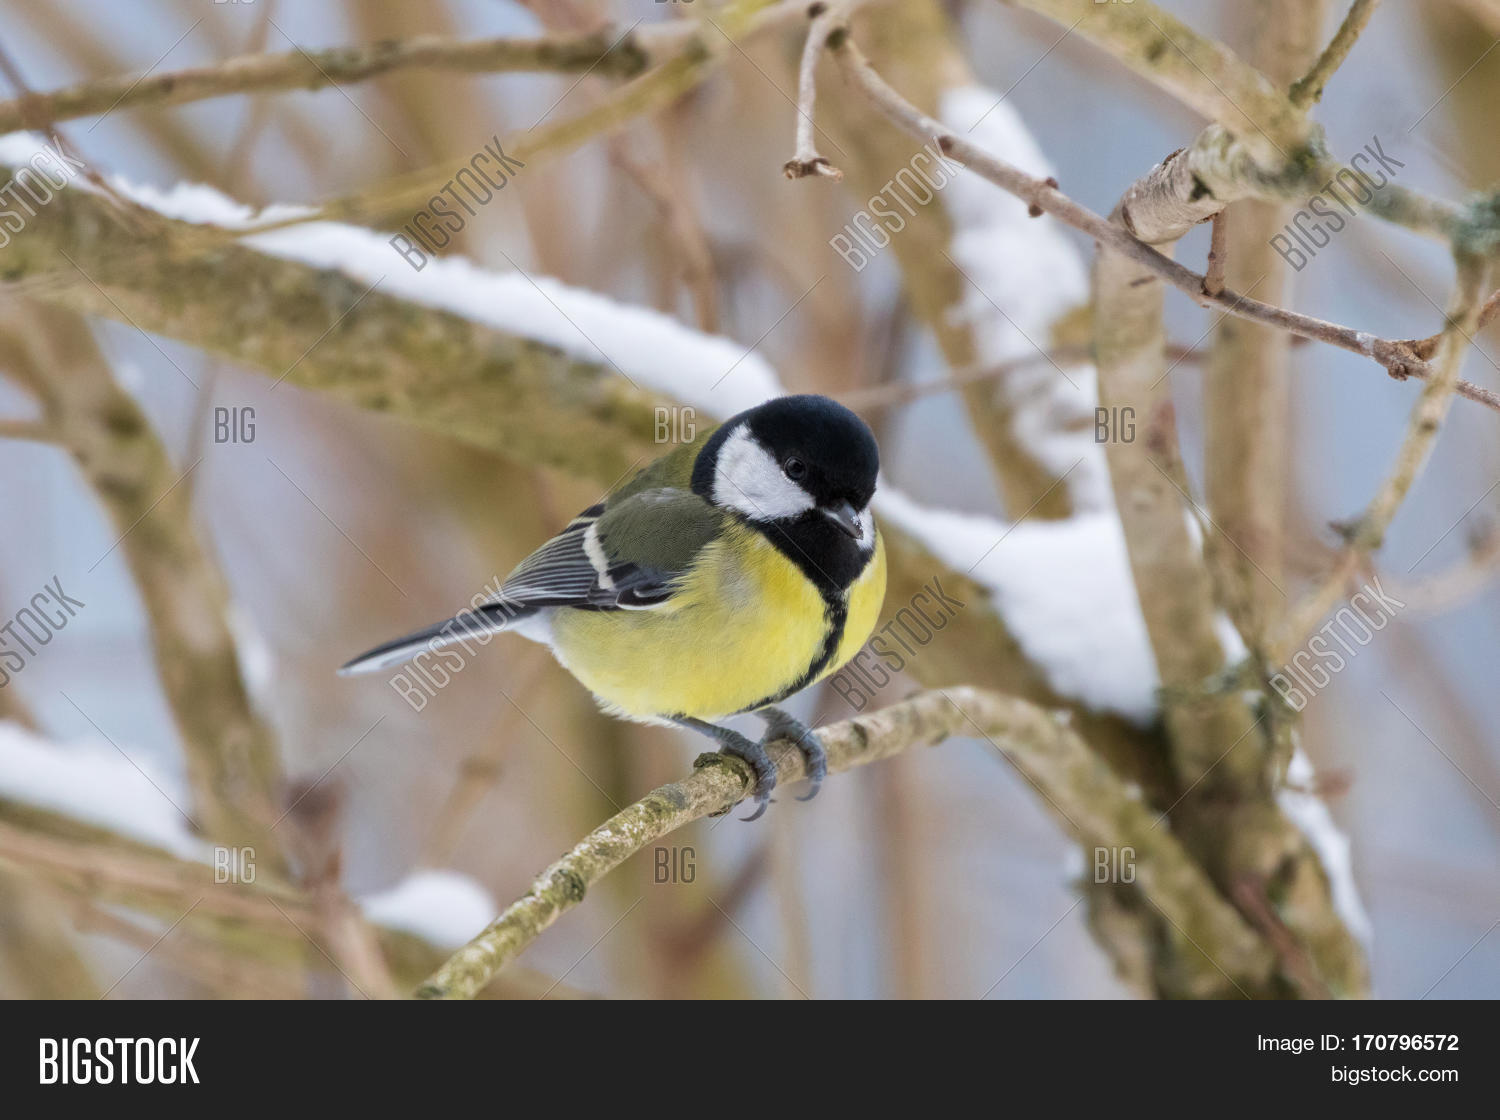 Kohlmeise Winter Cute Little Great Tit Image Photo Free Trial Bigstock